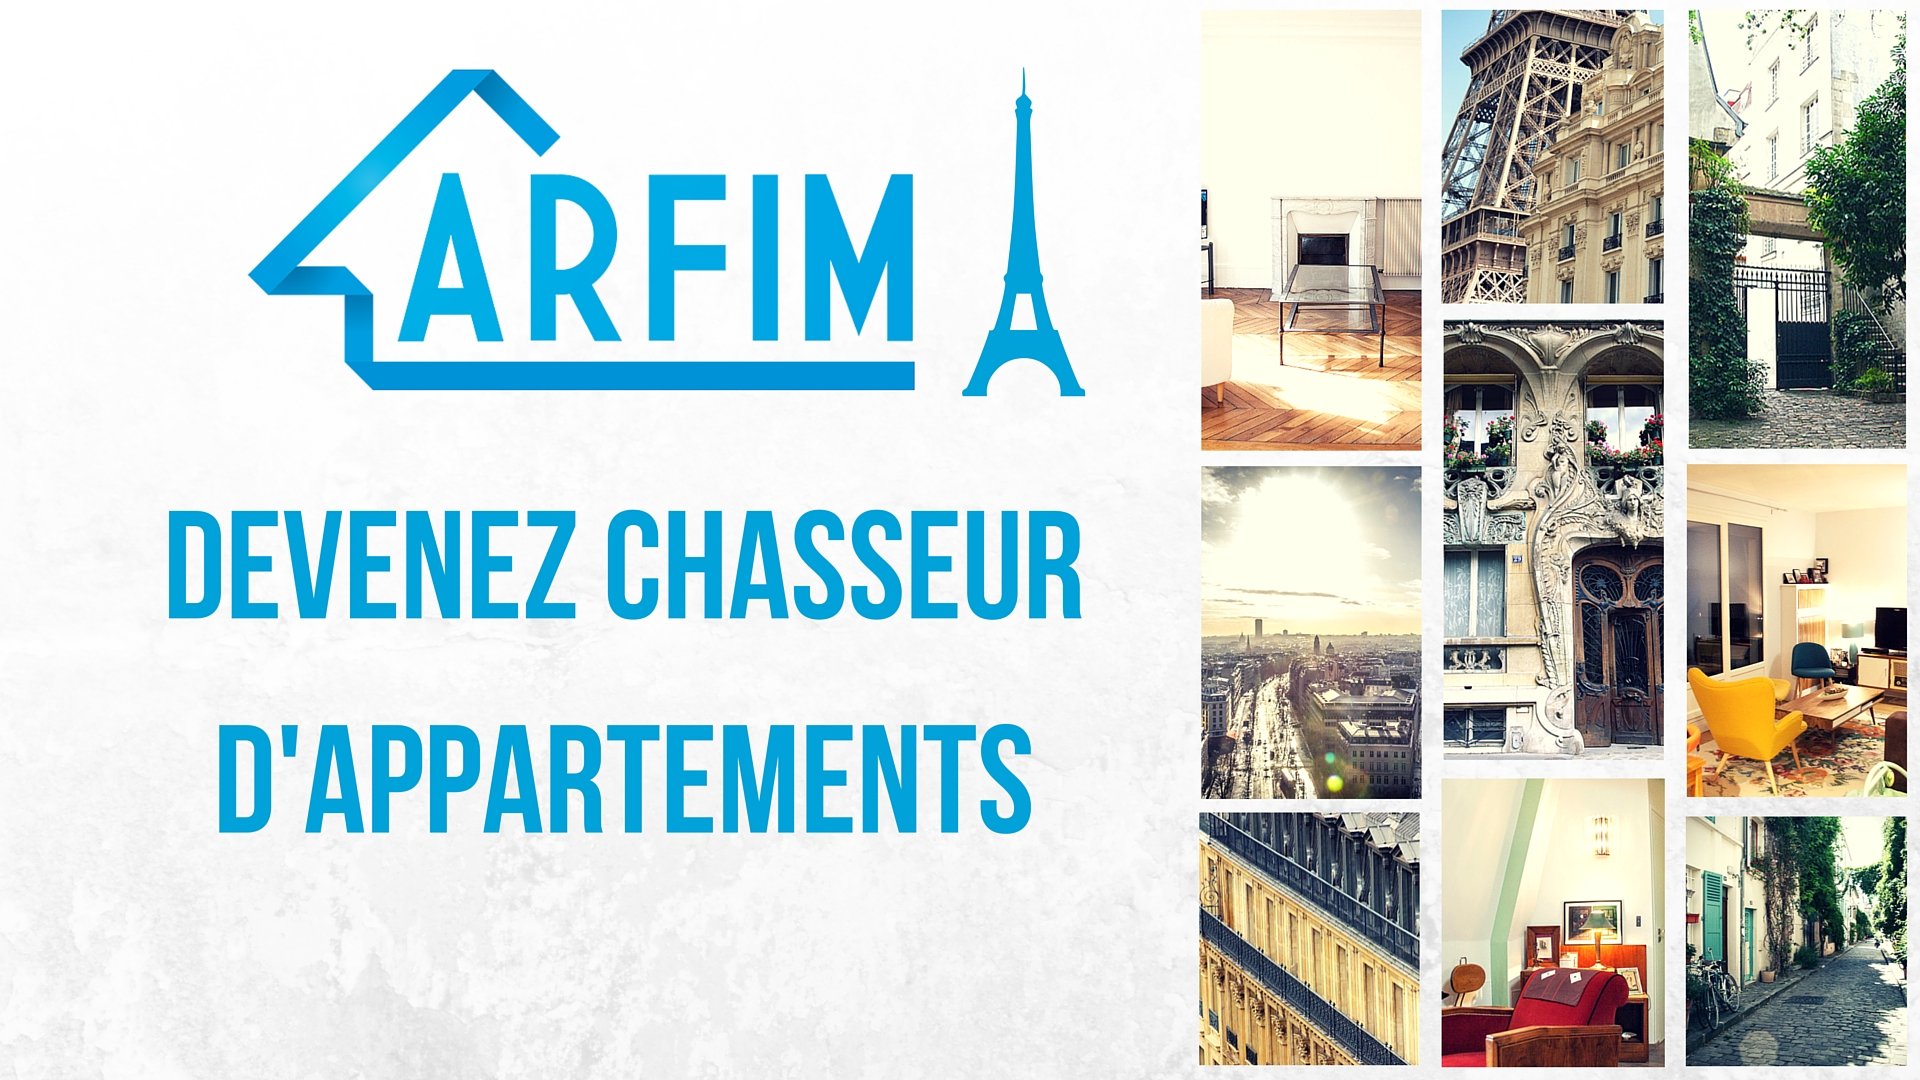 Devenir chasseur d'appartements